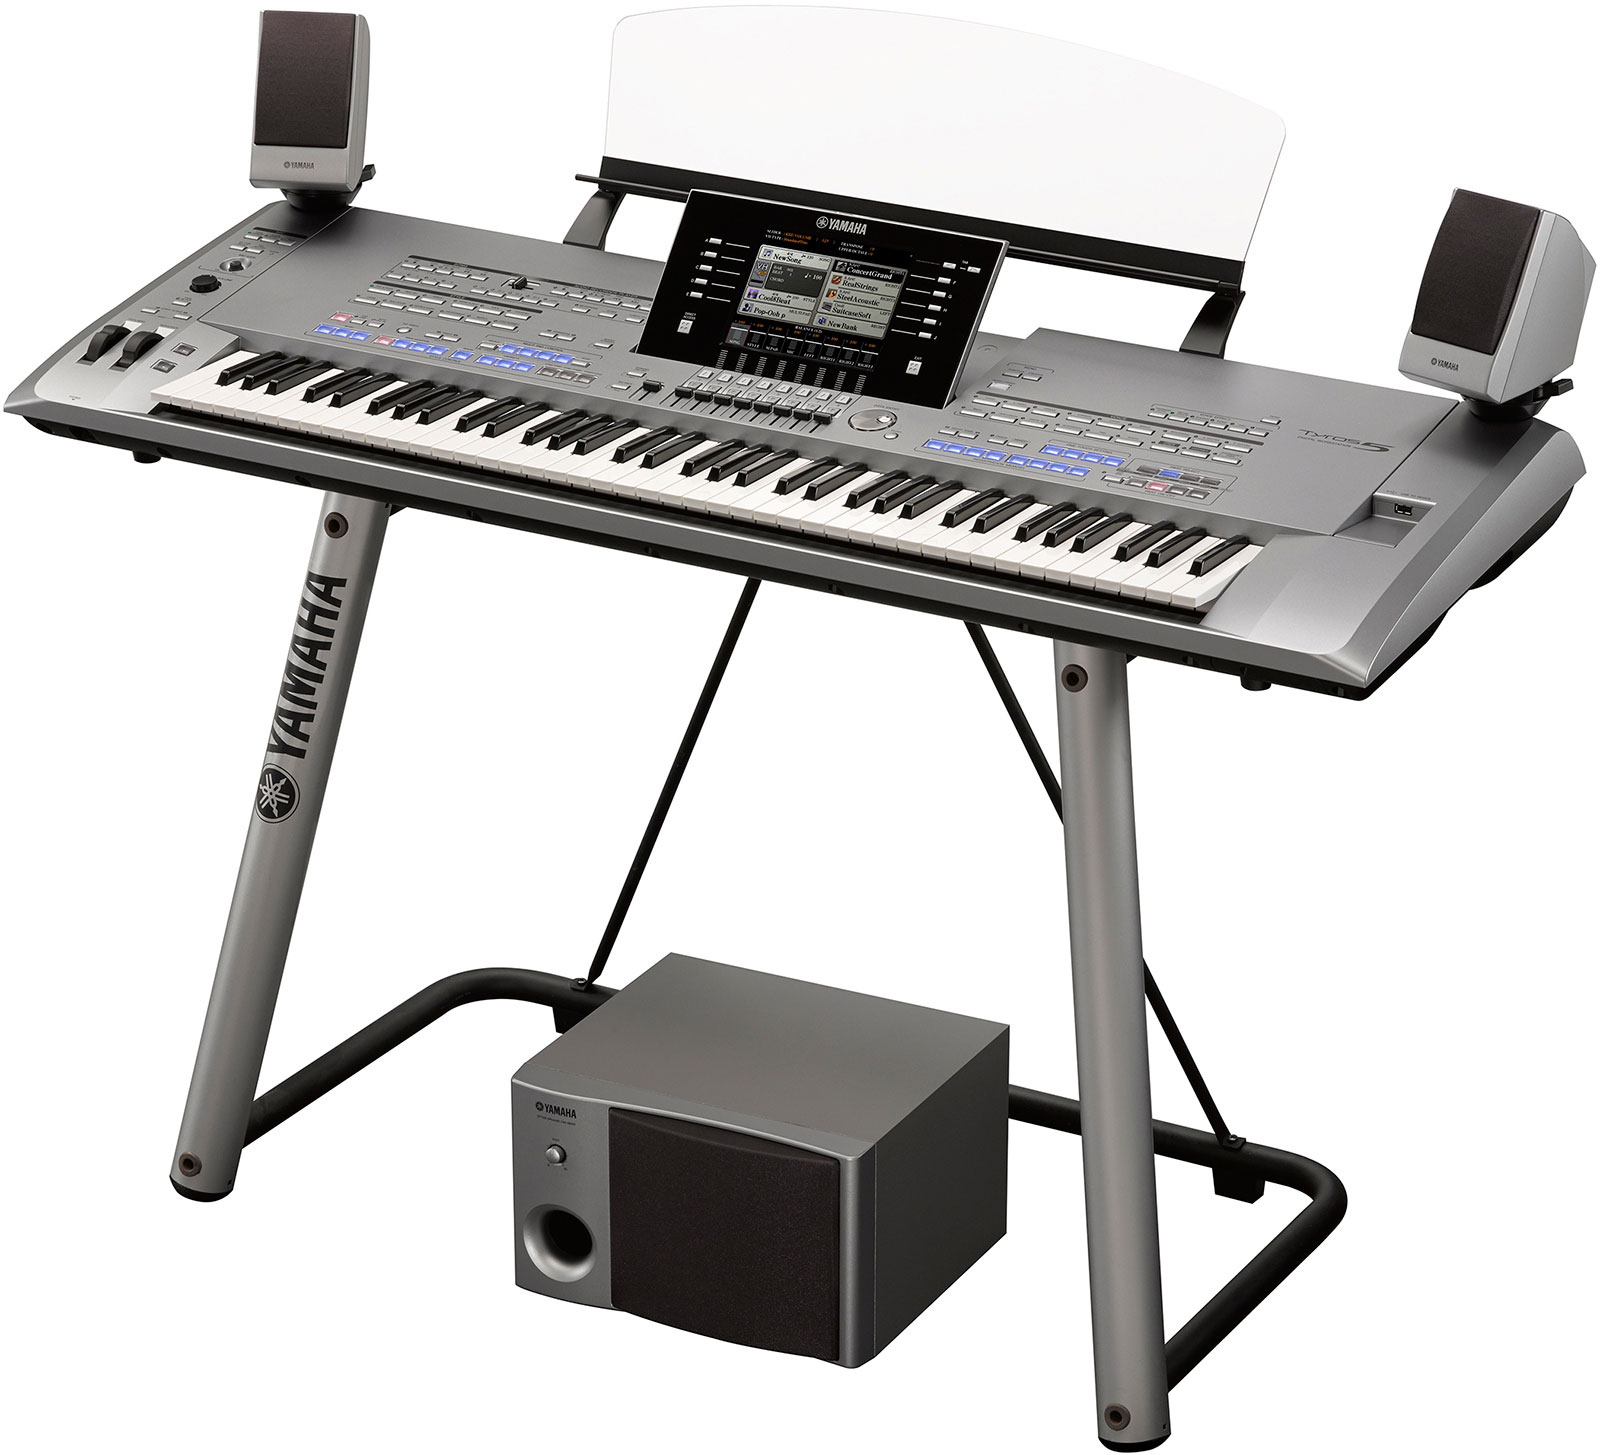 Yamaha tyros 5 61 and 76 key models announced piano and for Yamaha piano keyboard models